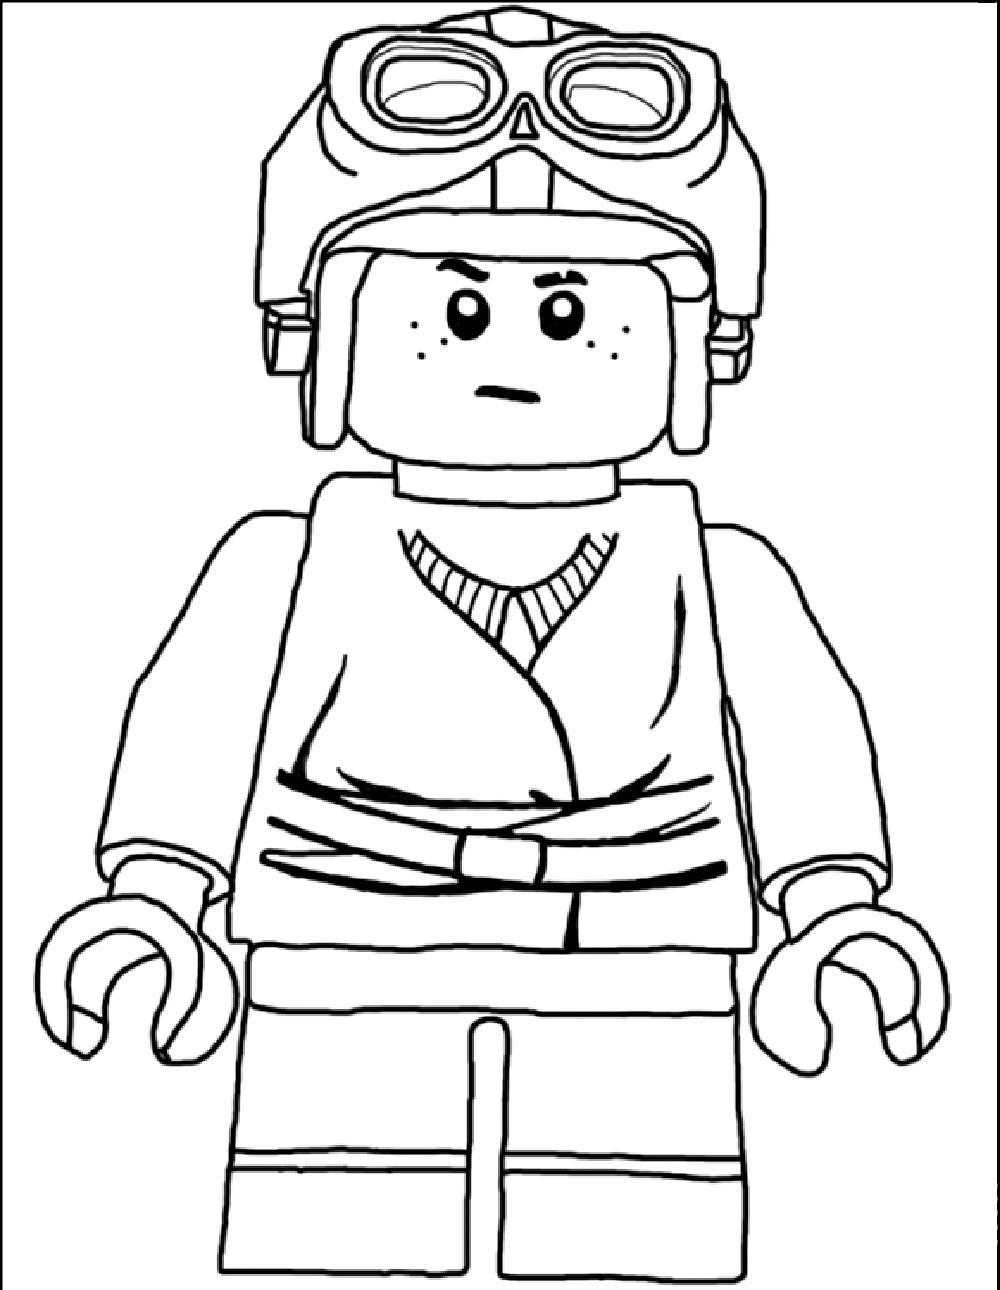 lego star wars pictures to colour lego star wars coloring pages getcoloringpagescom star pictures to colour wars lego